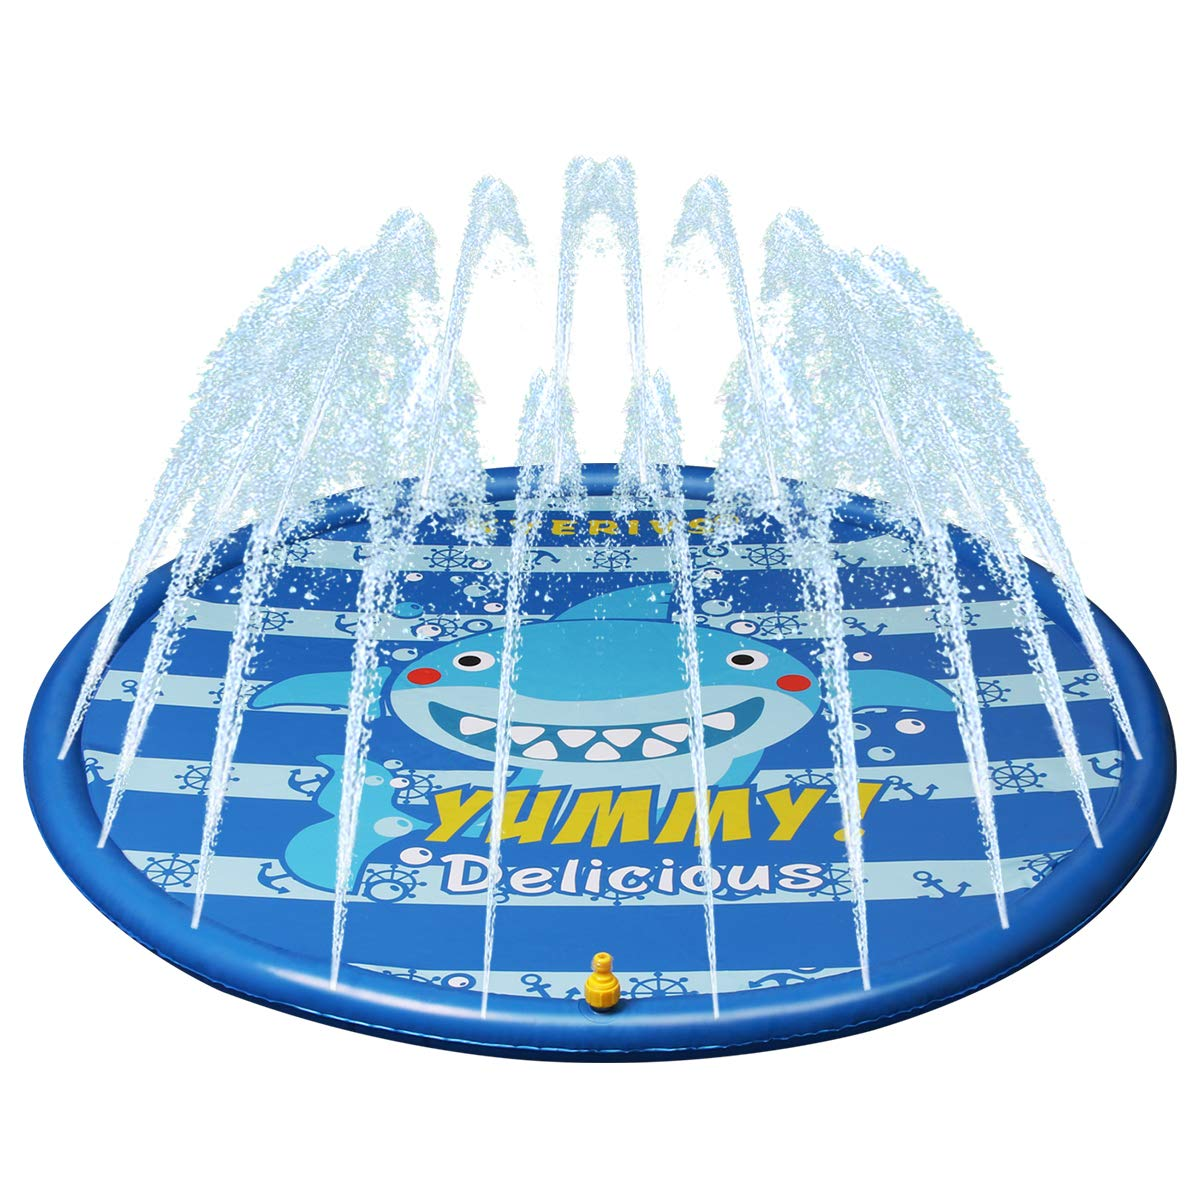 Kyerivs Sprinkle and Splash Play Mat for Kids,Boys and Girls Water Toys 60inch Perfect Backyard Activity Play Outdoor Sprinkler pad Great Summer Fun Durable Quality Splash Mat Diameter 150cm Diameter